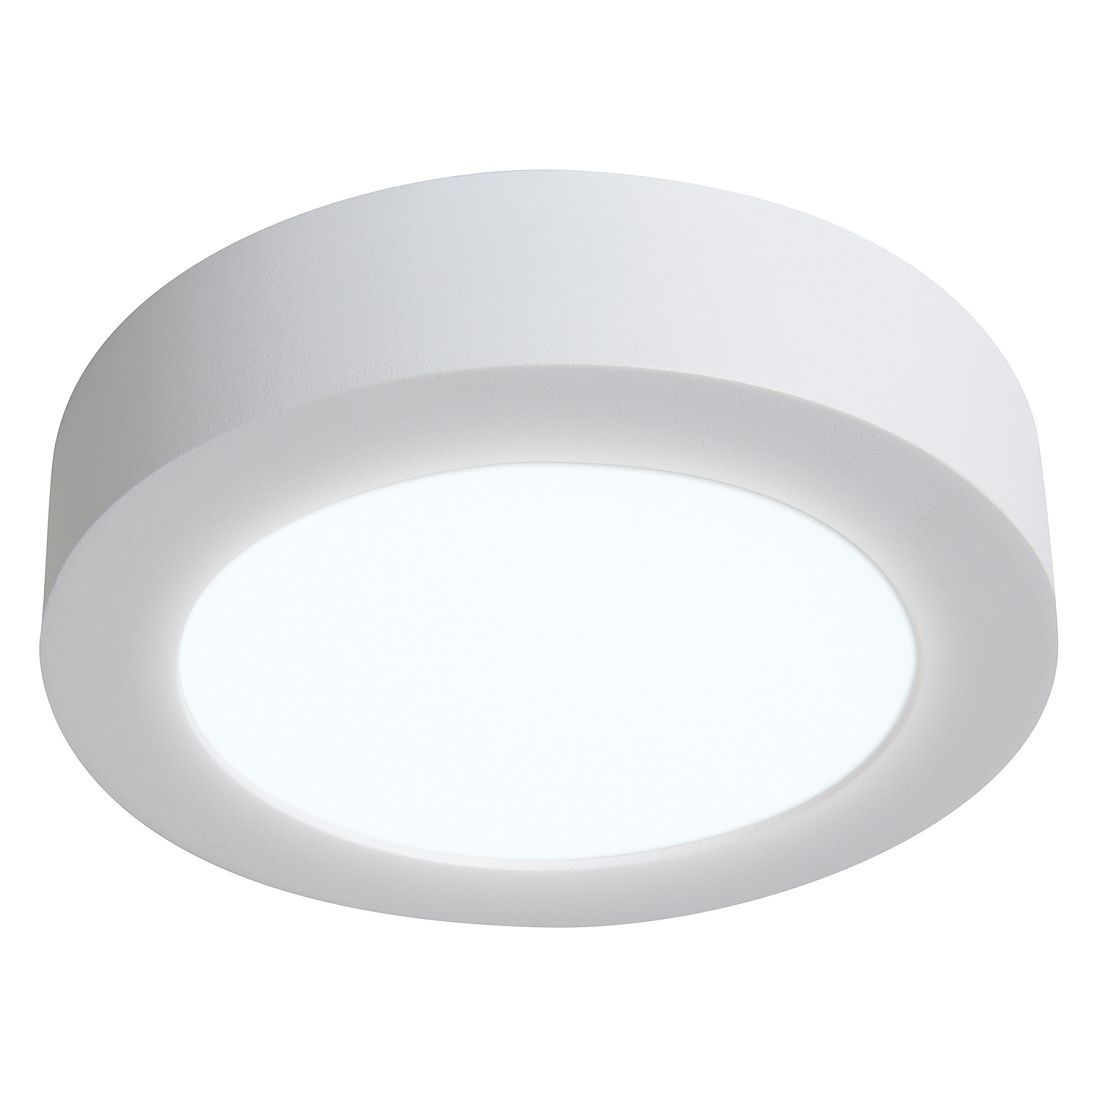 LED-plafondlamp Panels, Naeve